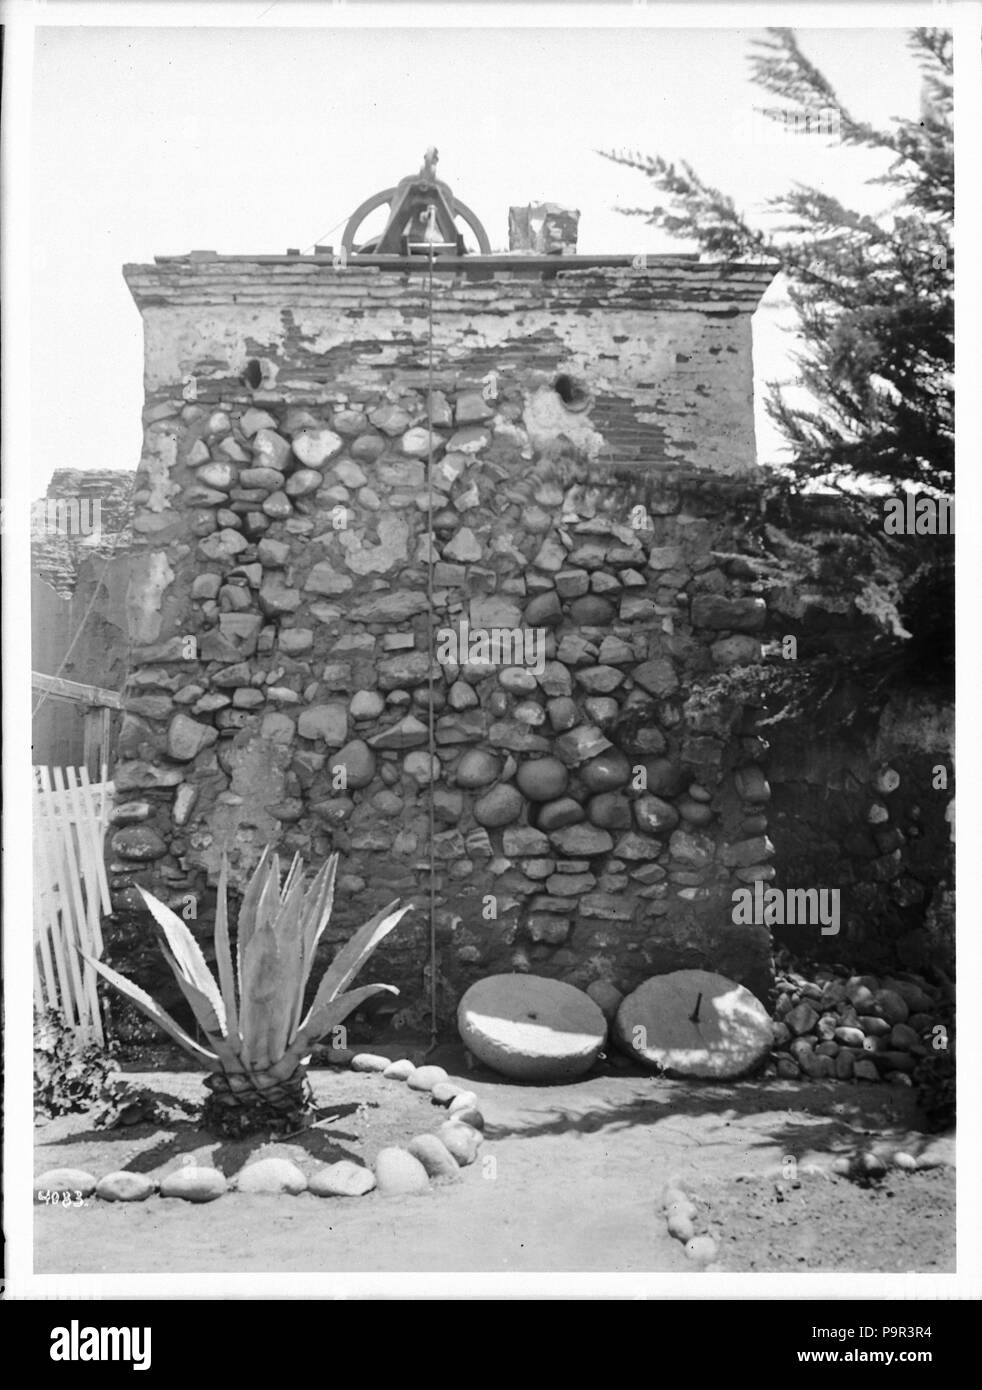 . English: Bell tower at San Diego Mission, ca.1905 Photograph of the bell tower at San Diego Mission, ca.1905. A rope attached to the bell(s) hangs down from a bracket at the top of the natural stone tower. Two disused millstones lay on the ground at the foot of the tower near a cultivated yucca-like plant which grows in a semicircle of stones. Part of a white picket fence is visible at left.  Call number: CHS-4083 Legacy record ID: chs-m16591; USC-1-1-1-14081 Photographer: James, George Wharton Filename: CHS-4083 Coverage date: circa 1905 Part of collection: California Historical Society Col - Stock Image